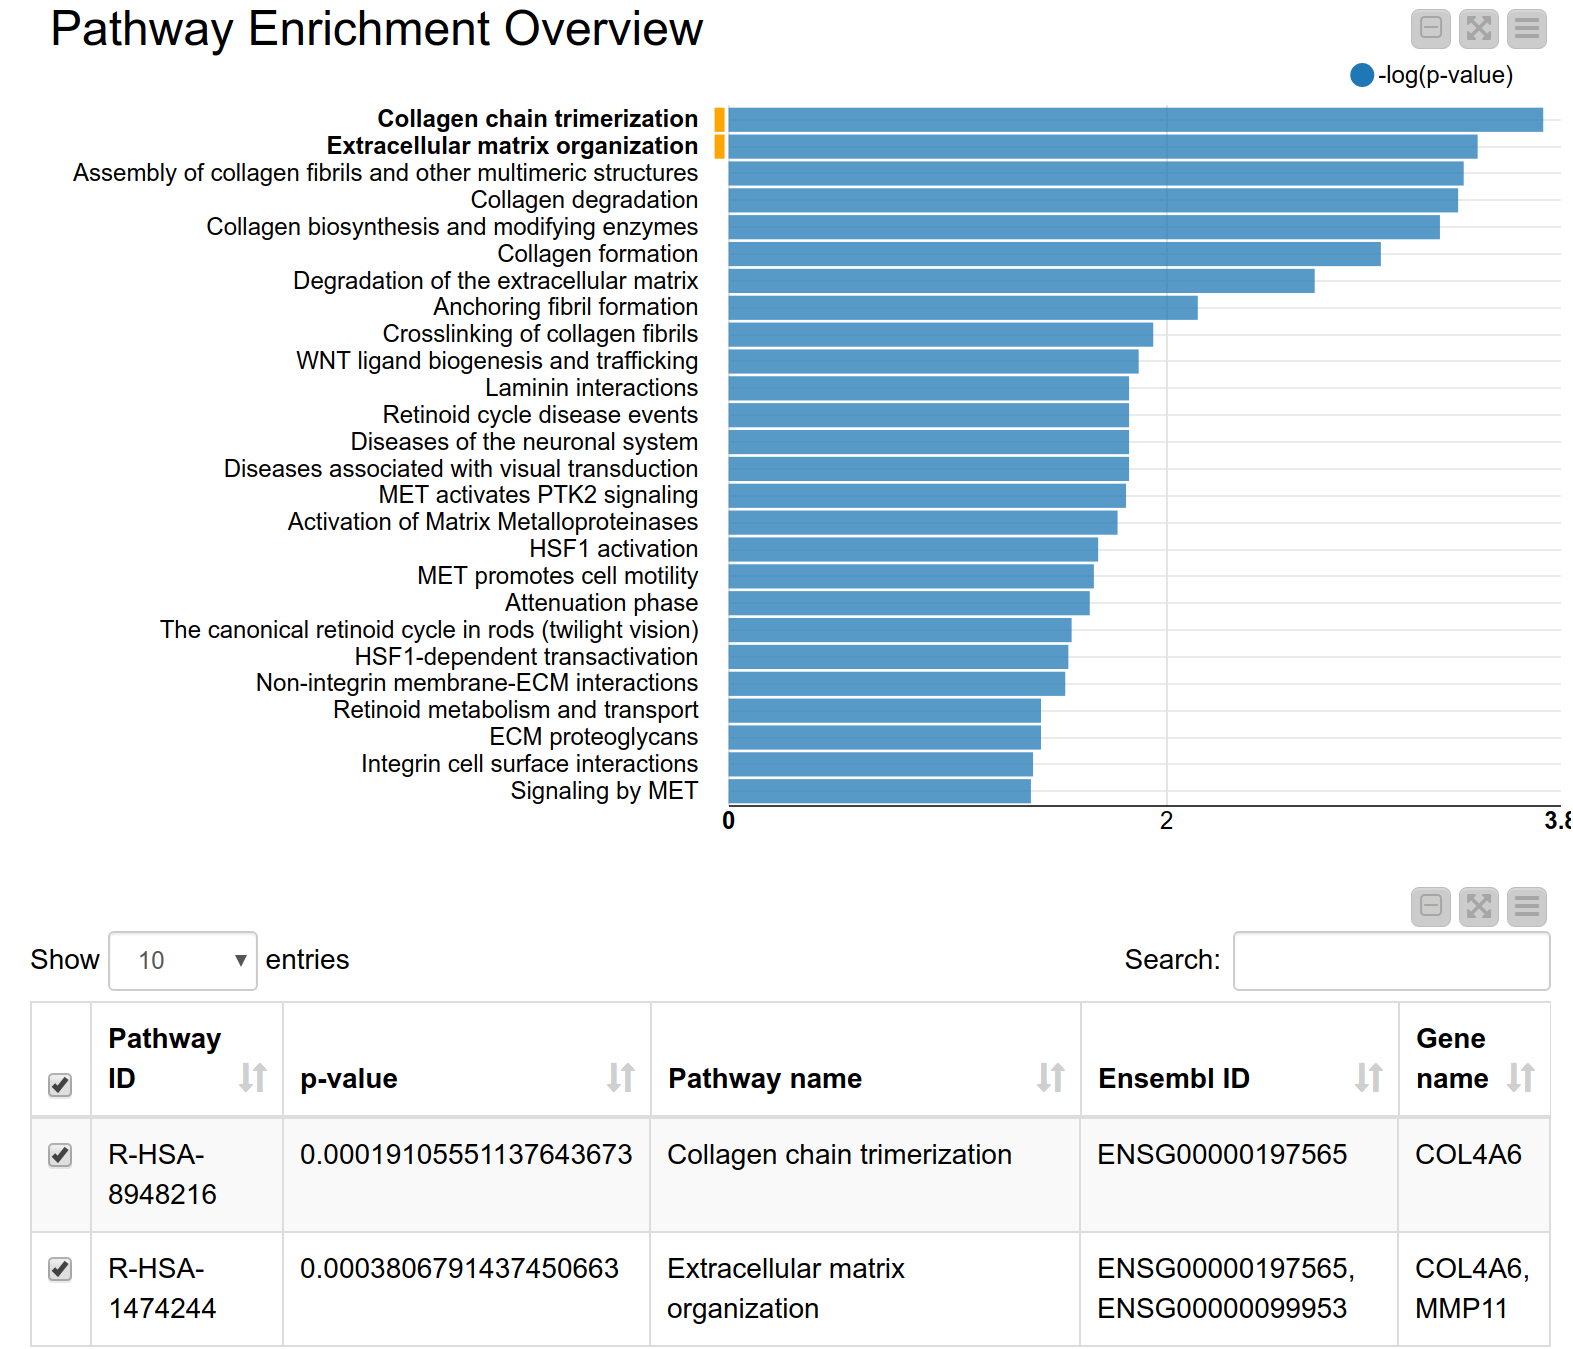 Analyzing Gene Expression Data with KNIME